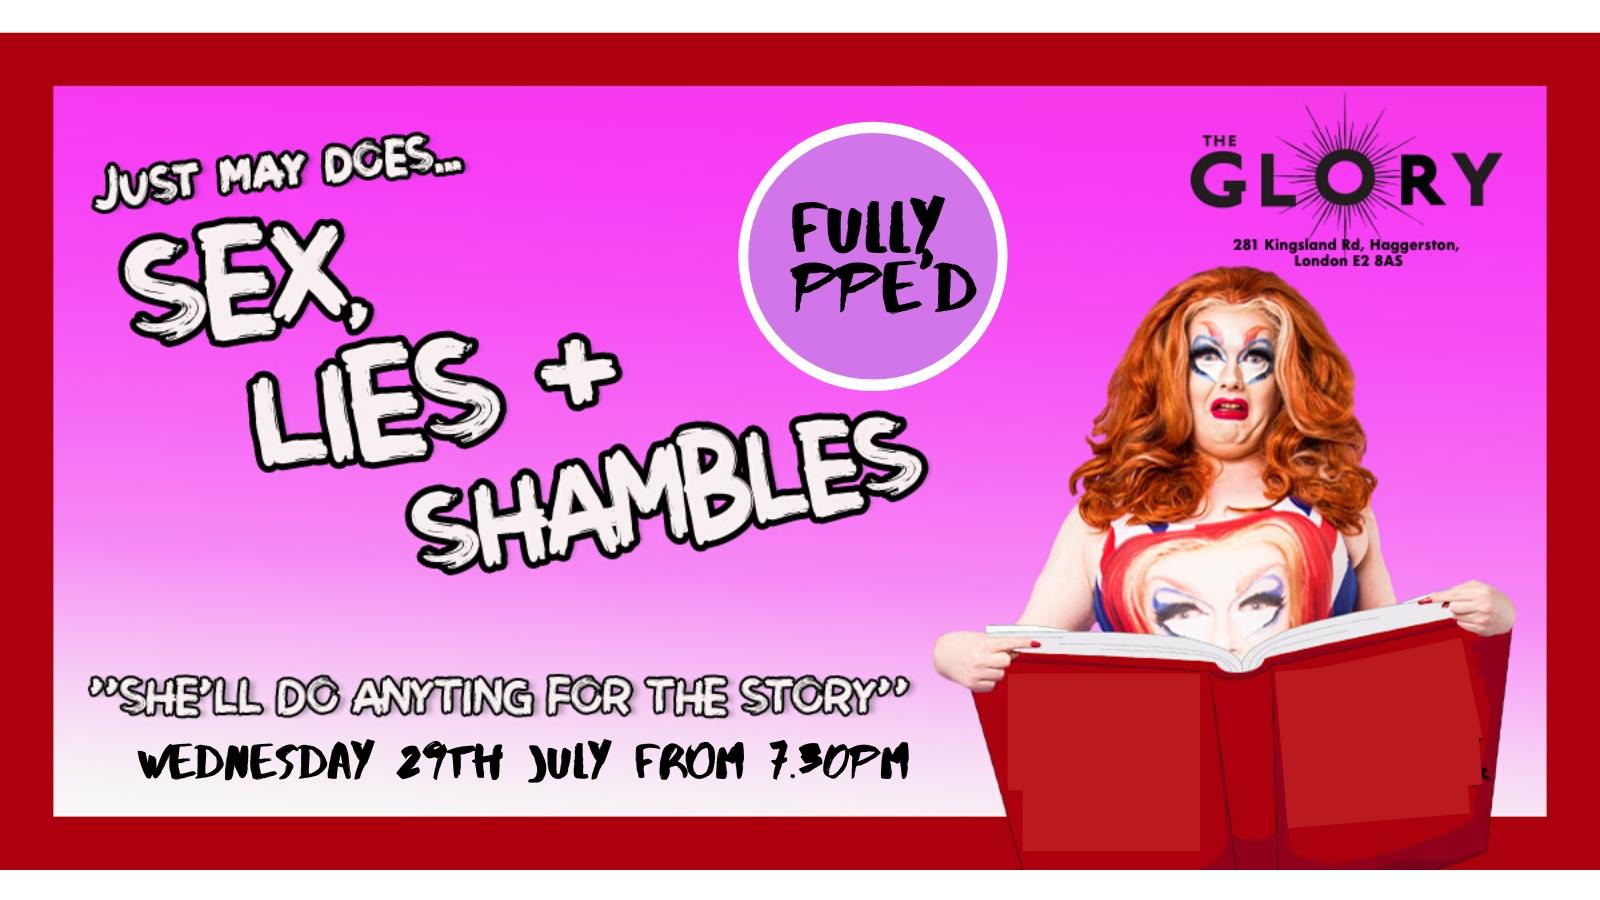 Just May presents Sex, Lies + Shambles